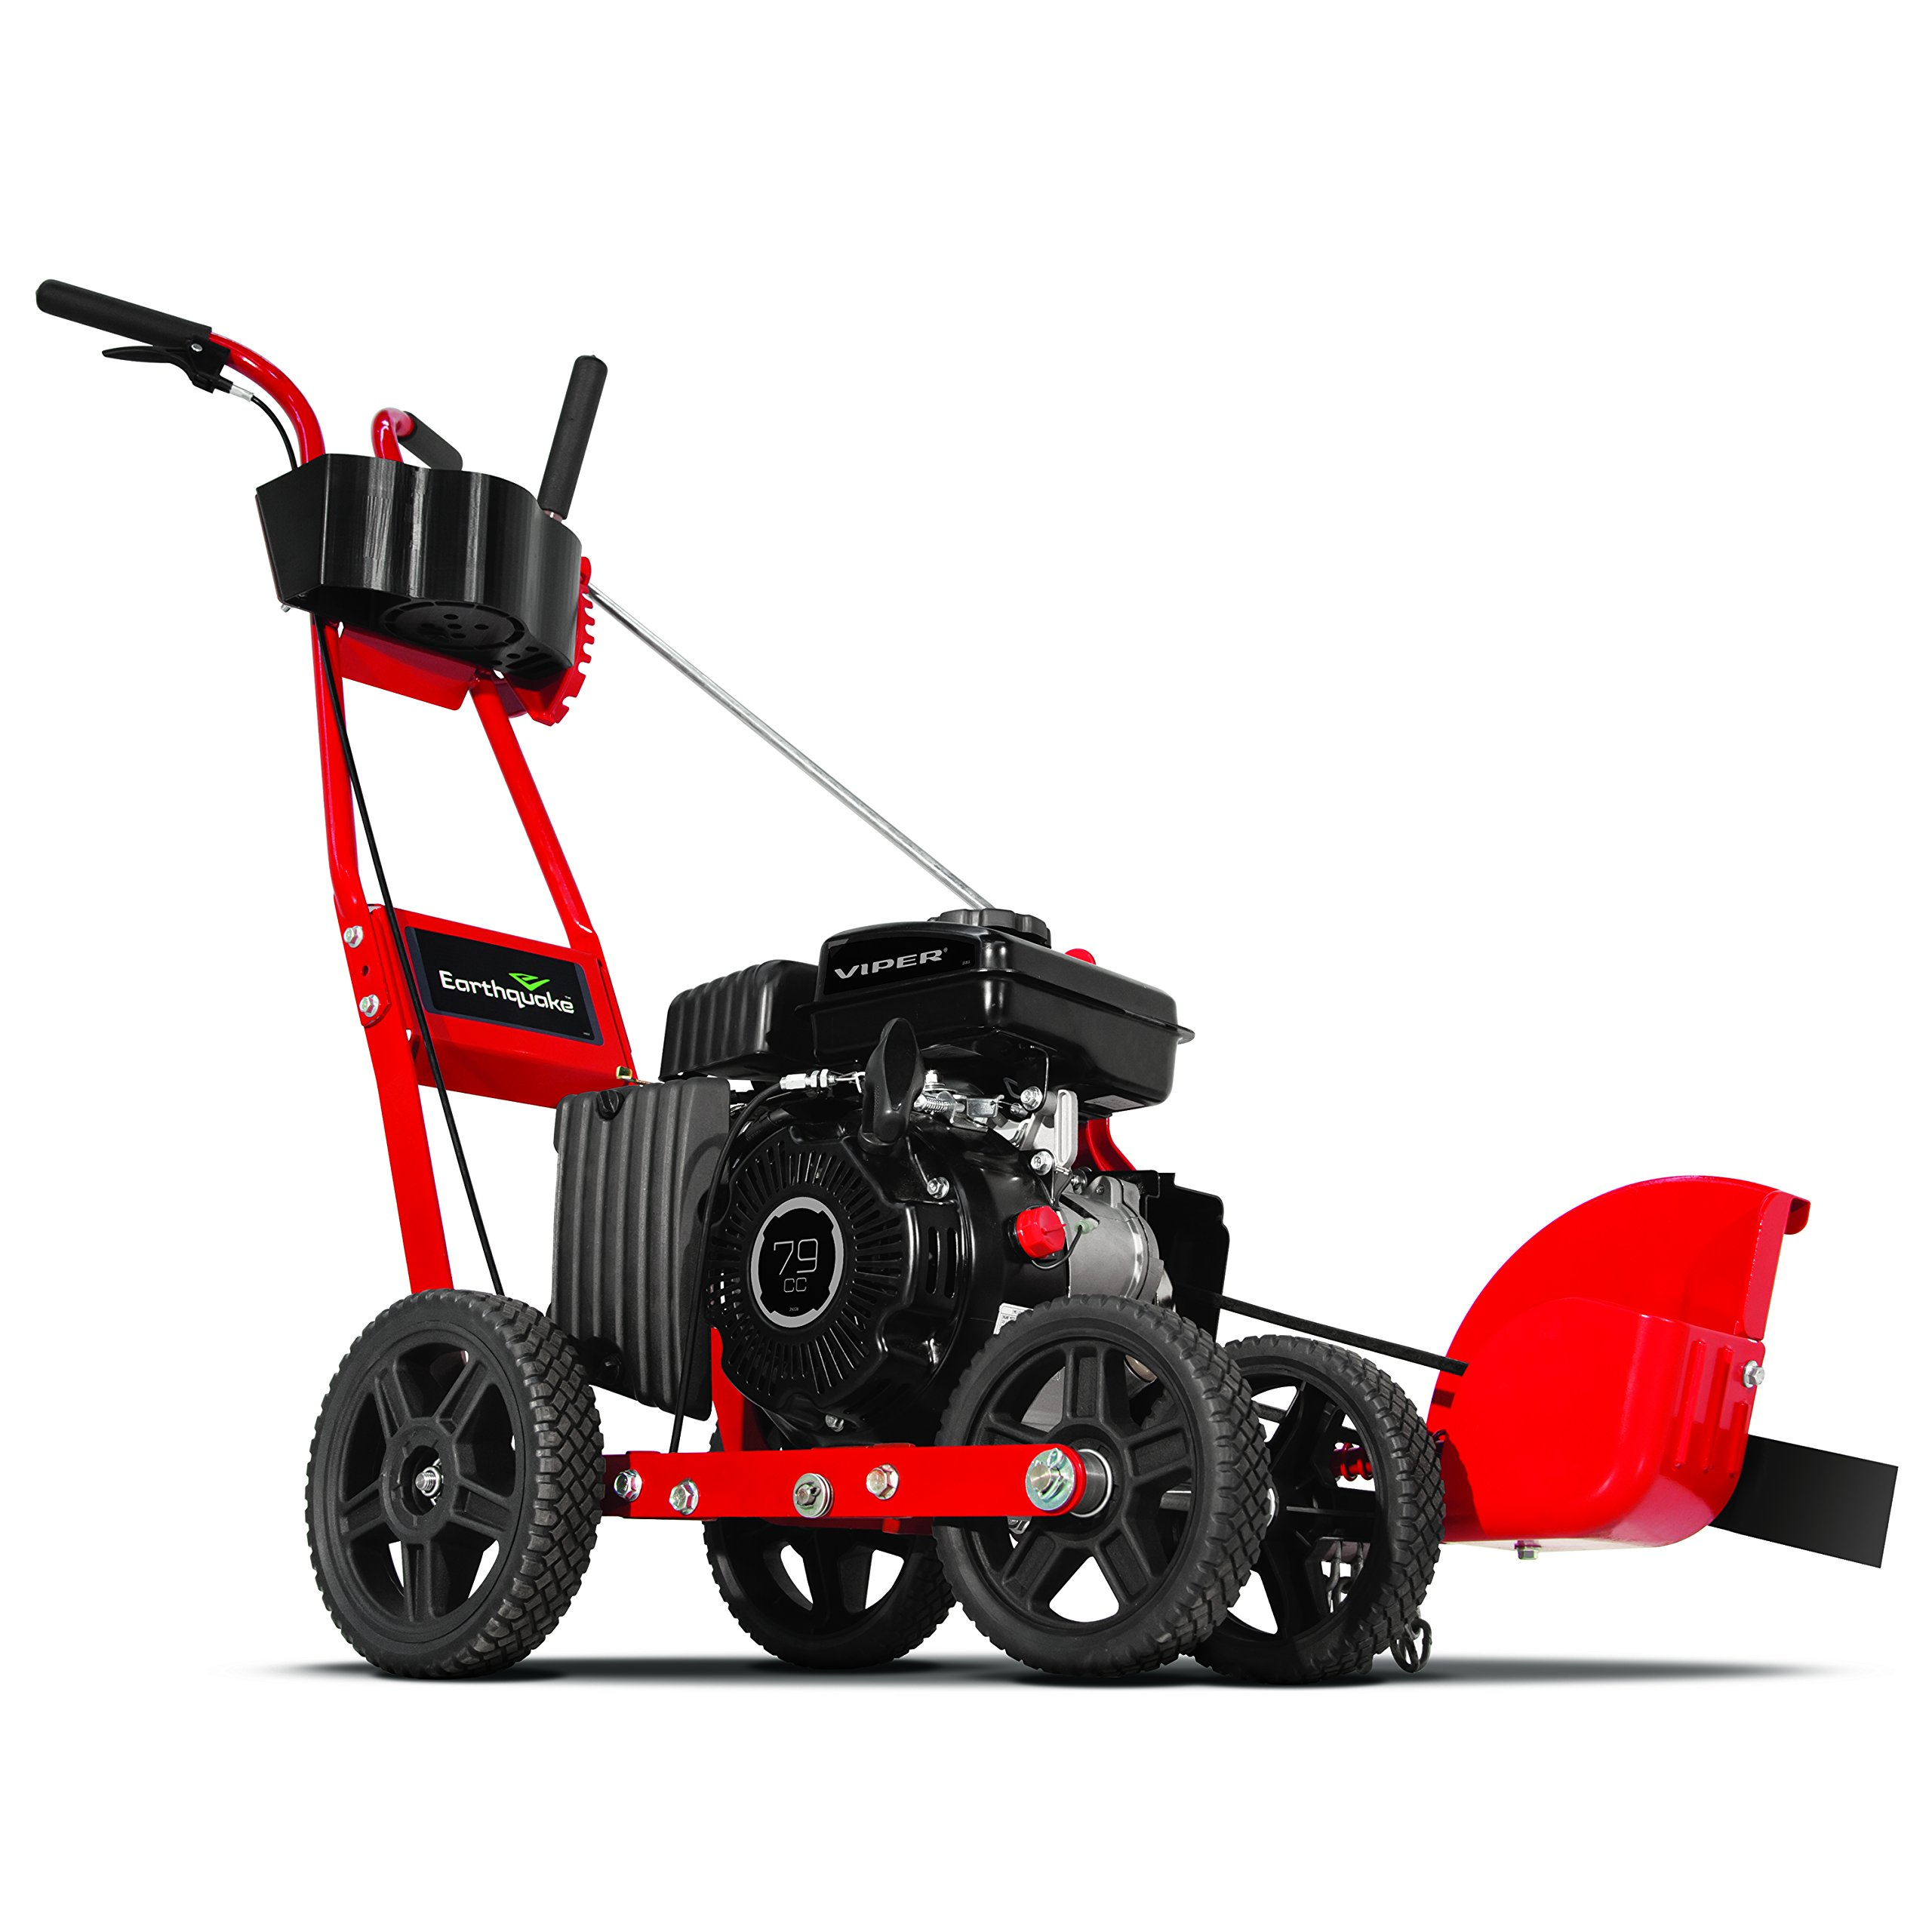 Earthquake 23275 Walk-Behind Landscape and Lawn Edger with 79cc 4-Cycle Engine by Earthquake